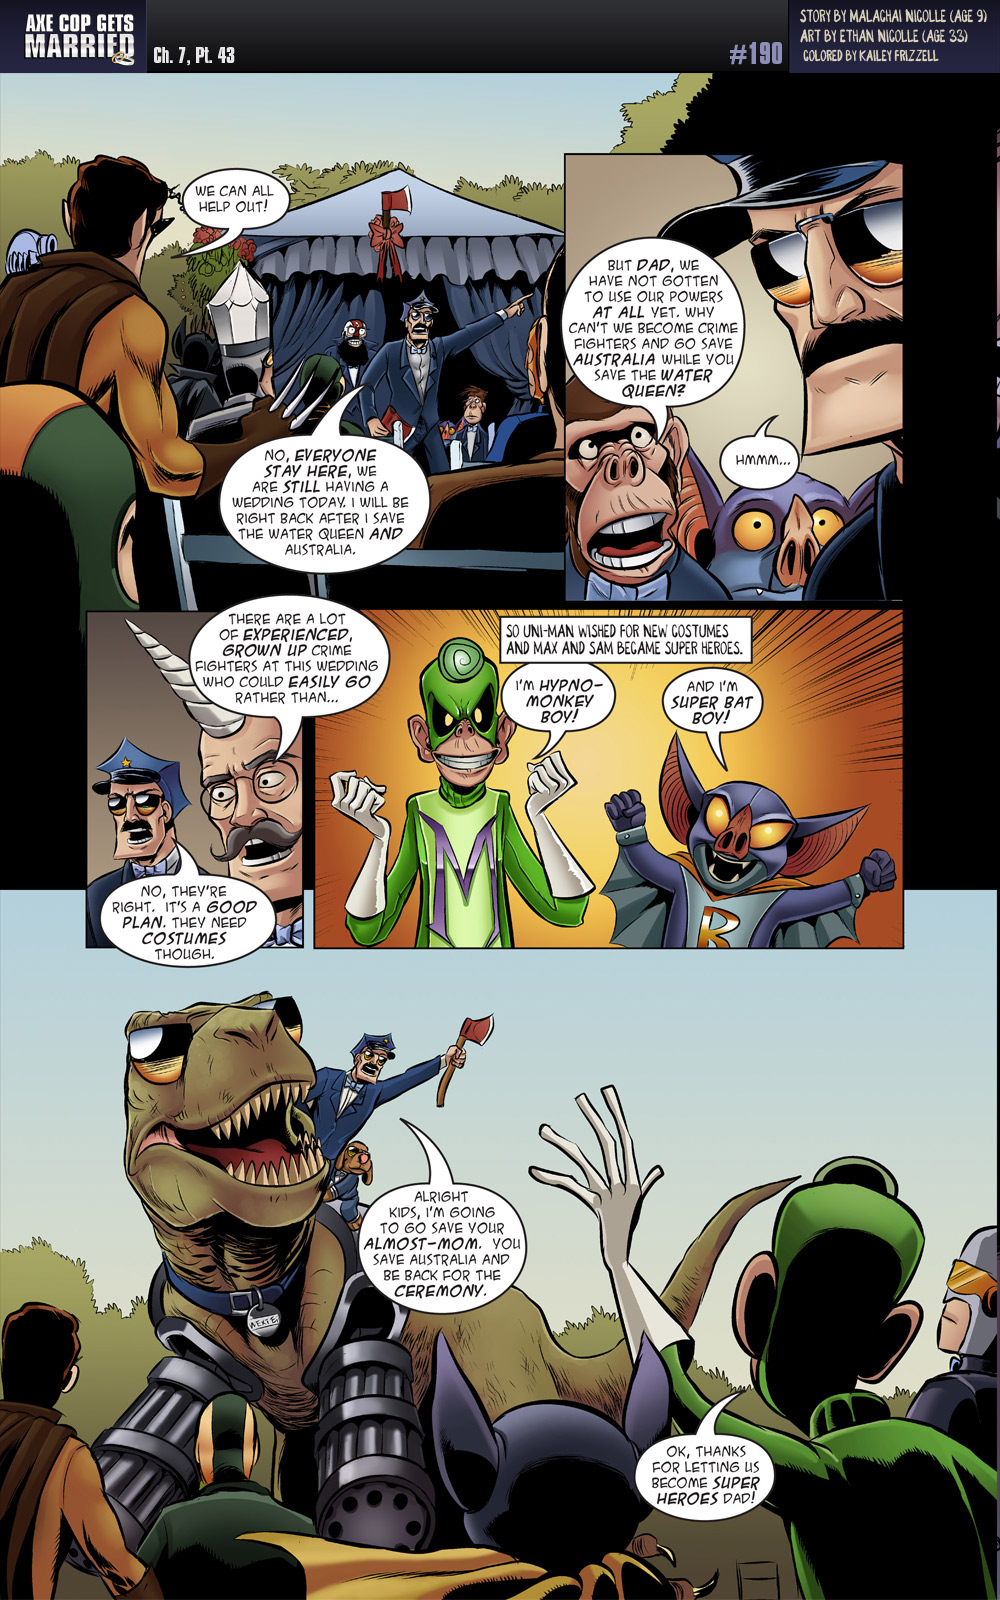 Wolver Man has not had a lot of lines in the Axe Cop series.  It's good to see him taking charge.